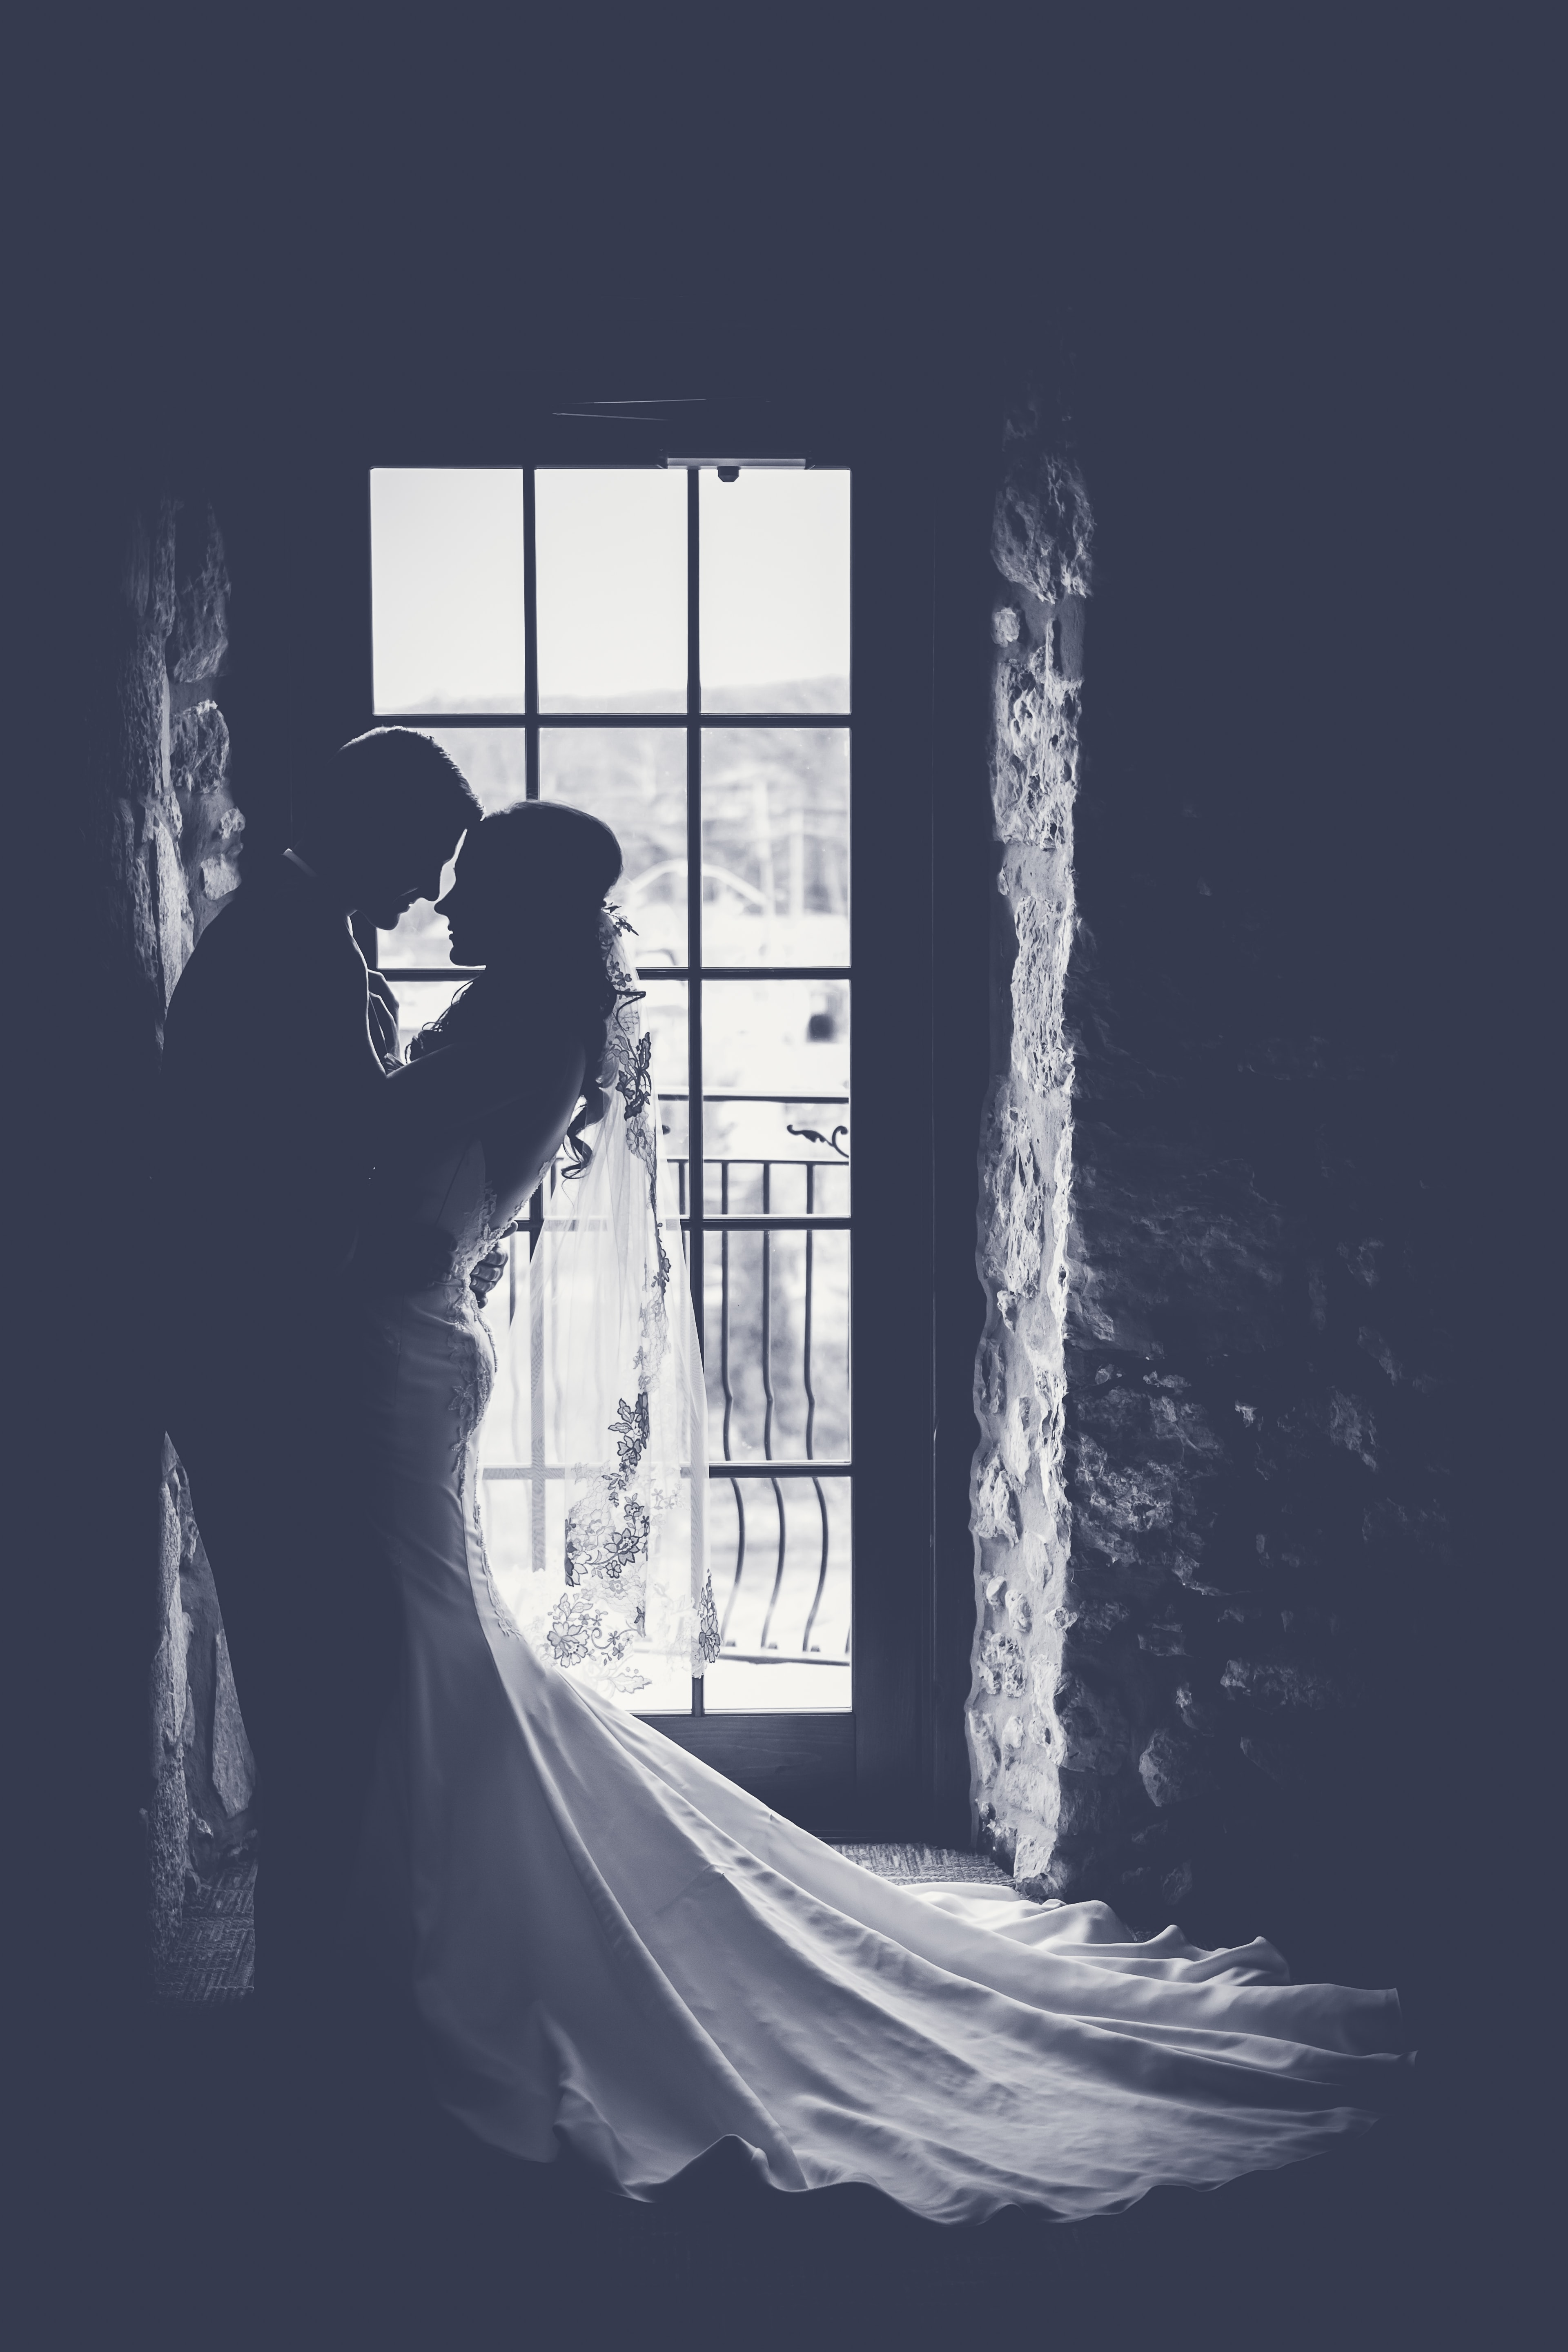 Sunlight streams through a doorway onto a just-married couple